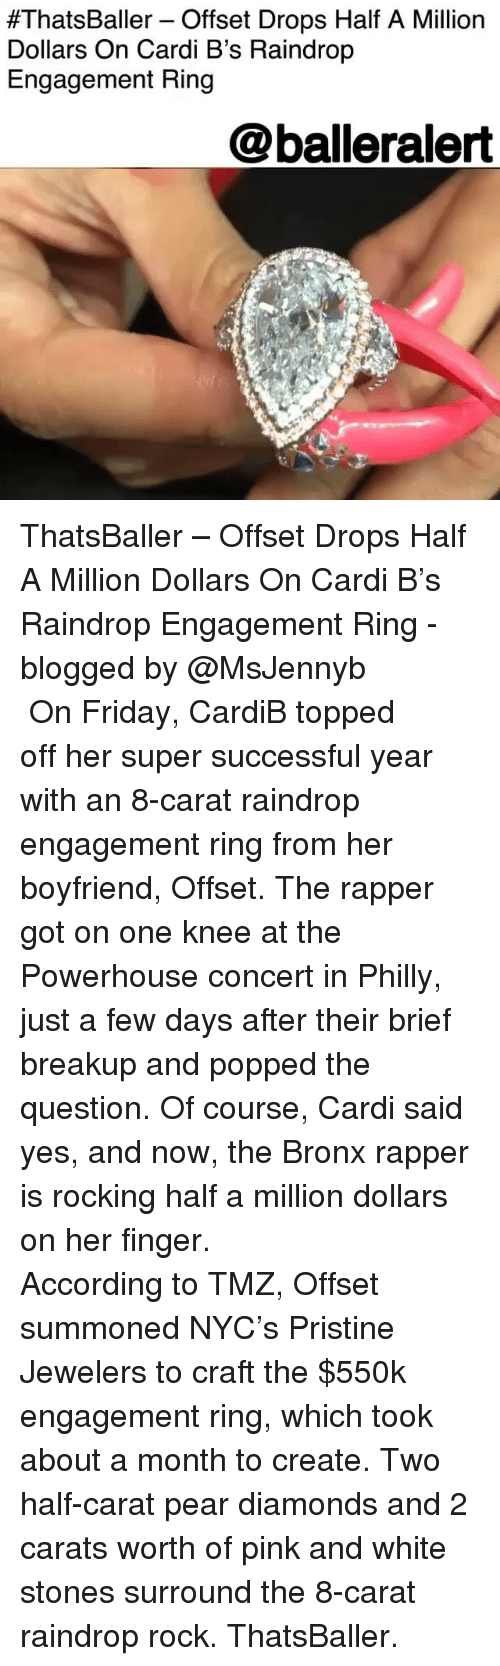 Her Finger:  #ThatsBaller_ Offset Drops Half A Million  Dollars On Cardi B's Raindrop  Engagement Ring  @balleralert ThatsBaller – Offset Drops Half A Million Dollars On Cardi B's Raindrop Engagement Ring - blogged by @MsJennyb ⠀⠀⠀⠀⠀⠀⠀ ⠀⠀⠀⠀⠀⠀⠀ On Friday, CardiB topped off her super successful year with an 8-carat raindrop engagement ring from her boyfriend, Offset. The rapper got on one knee at the Powerhouse concert in Philly, just a few days after their brief breakup and popped the question. Of course, Cardi said yes, and now, the Bronx rapper is rocking half a million dollars on her finger. ⠀⠀⠀⠀⠀⠀⠀ ⠀⠀⠀⠀⠀⠀⠀ According to TMZ, Offset summoned NYC's Pristine Jewelers to craft the $550k engagement ring, which took about a month to create. Two half-carat pear diamonds and 2 carats worth of pink and white stones surround the 8-carat raindrop rock. ThatsBaller.